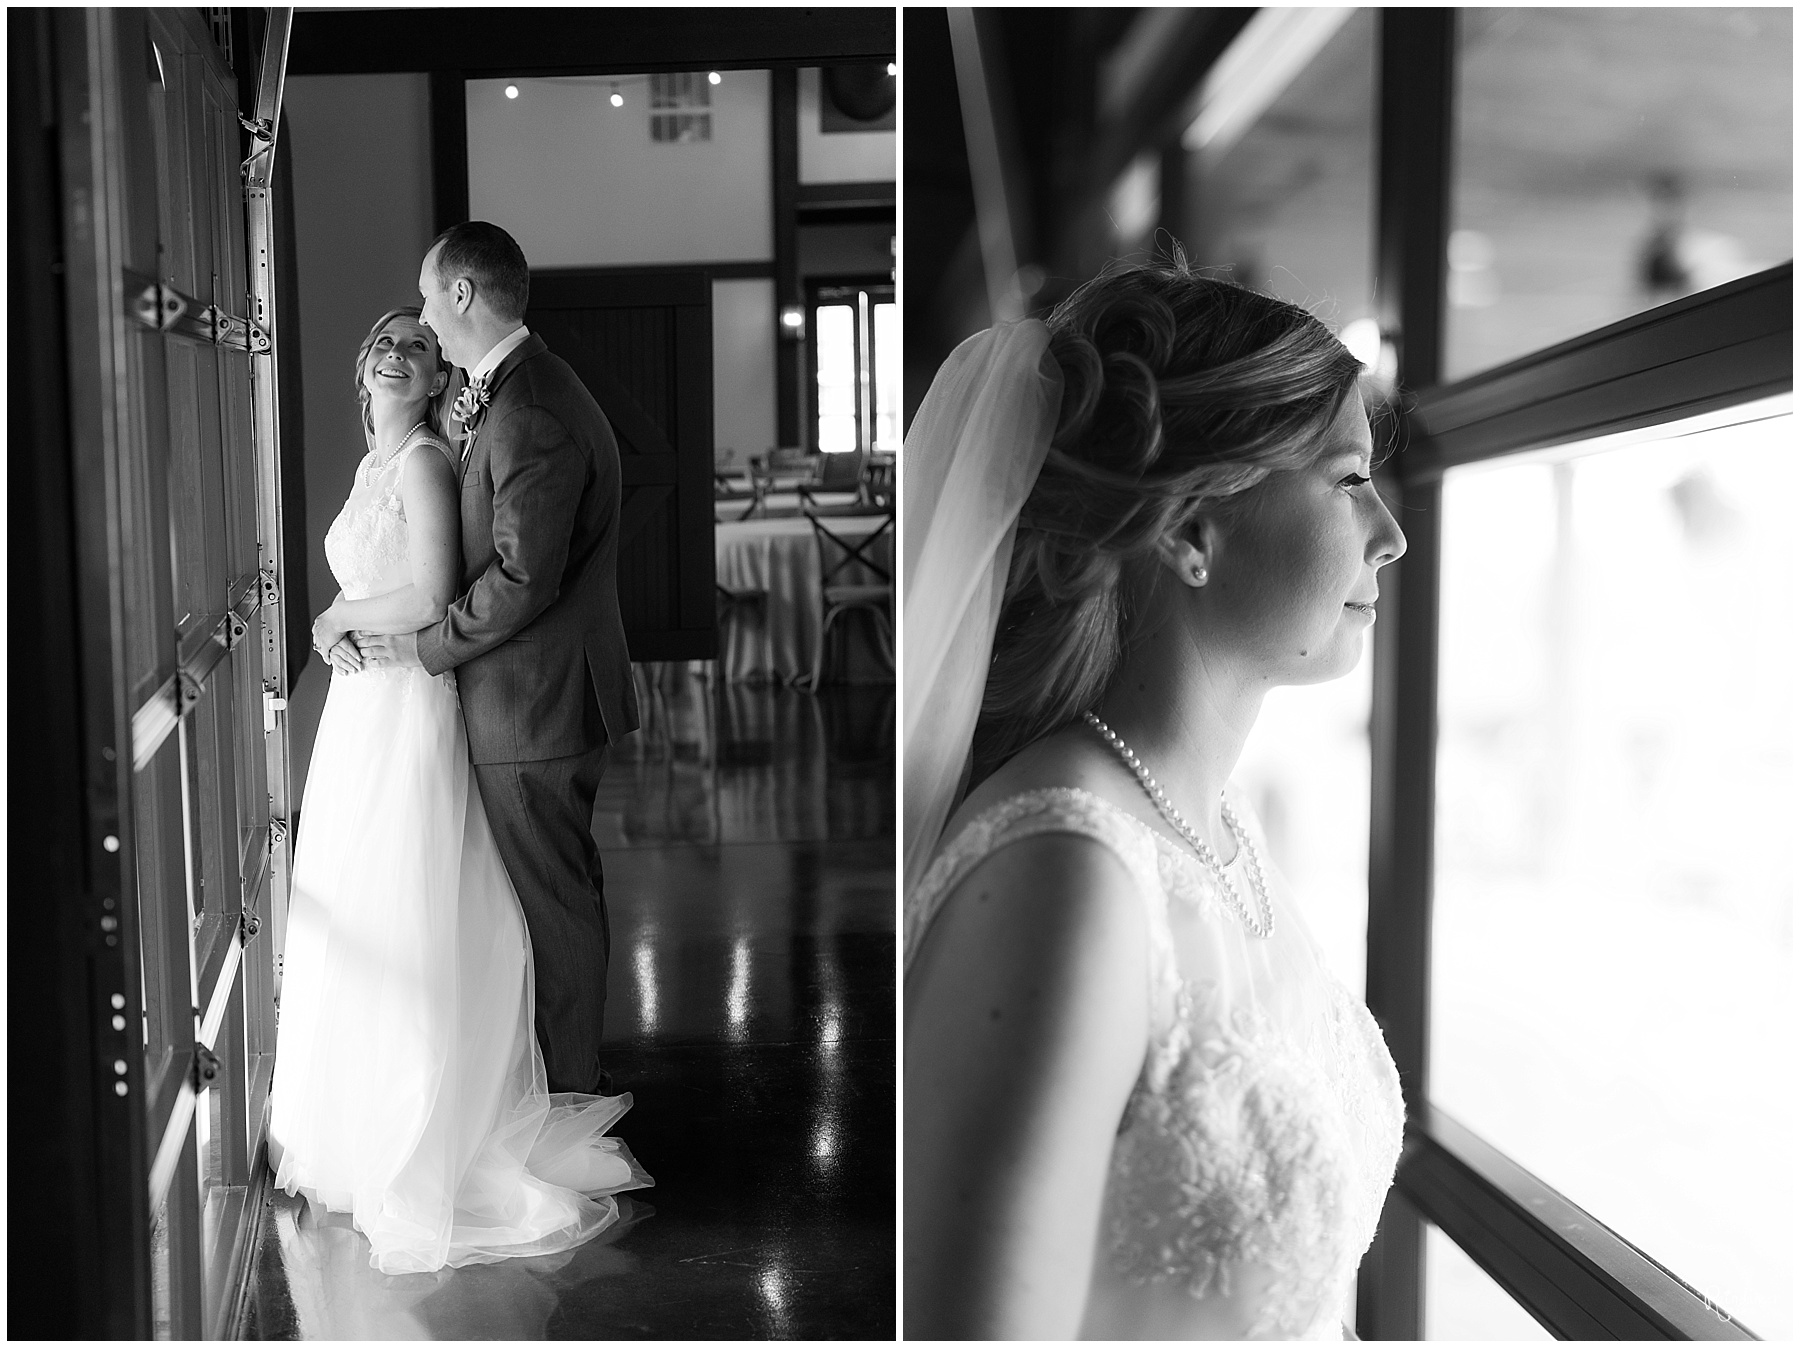 Bride and groom looking out window Raindancer Studios Indianapolis Wedding Photographer Jill Howell